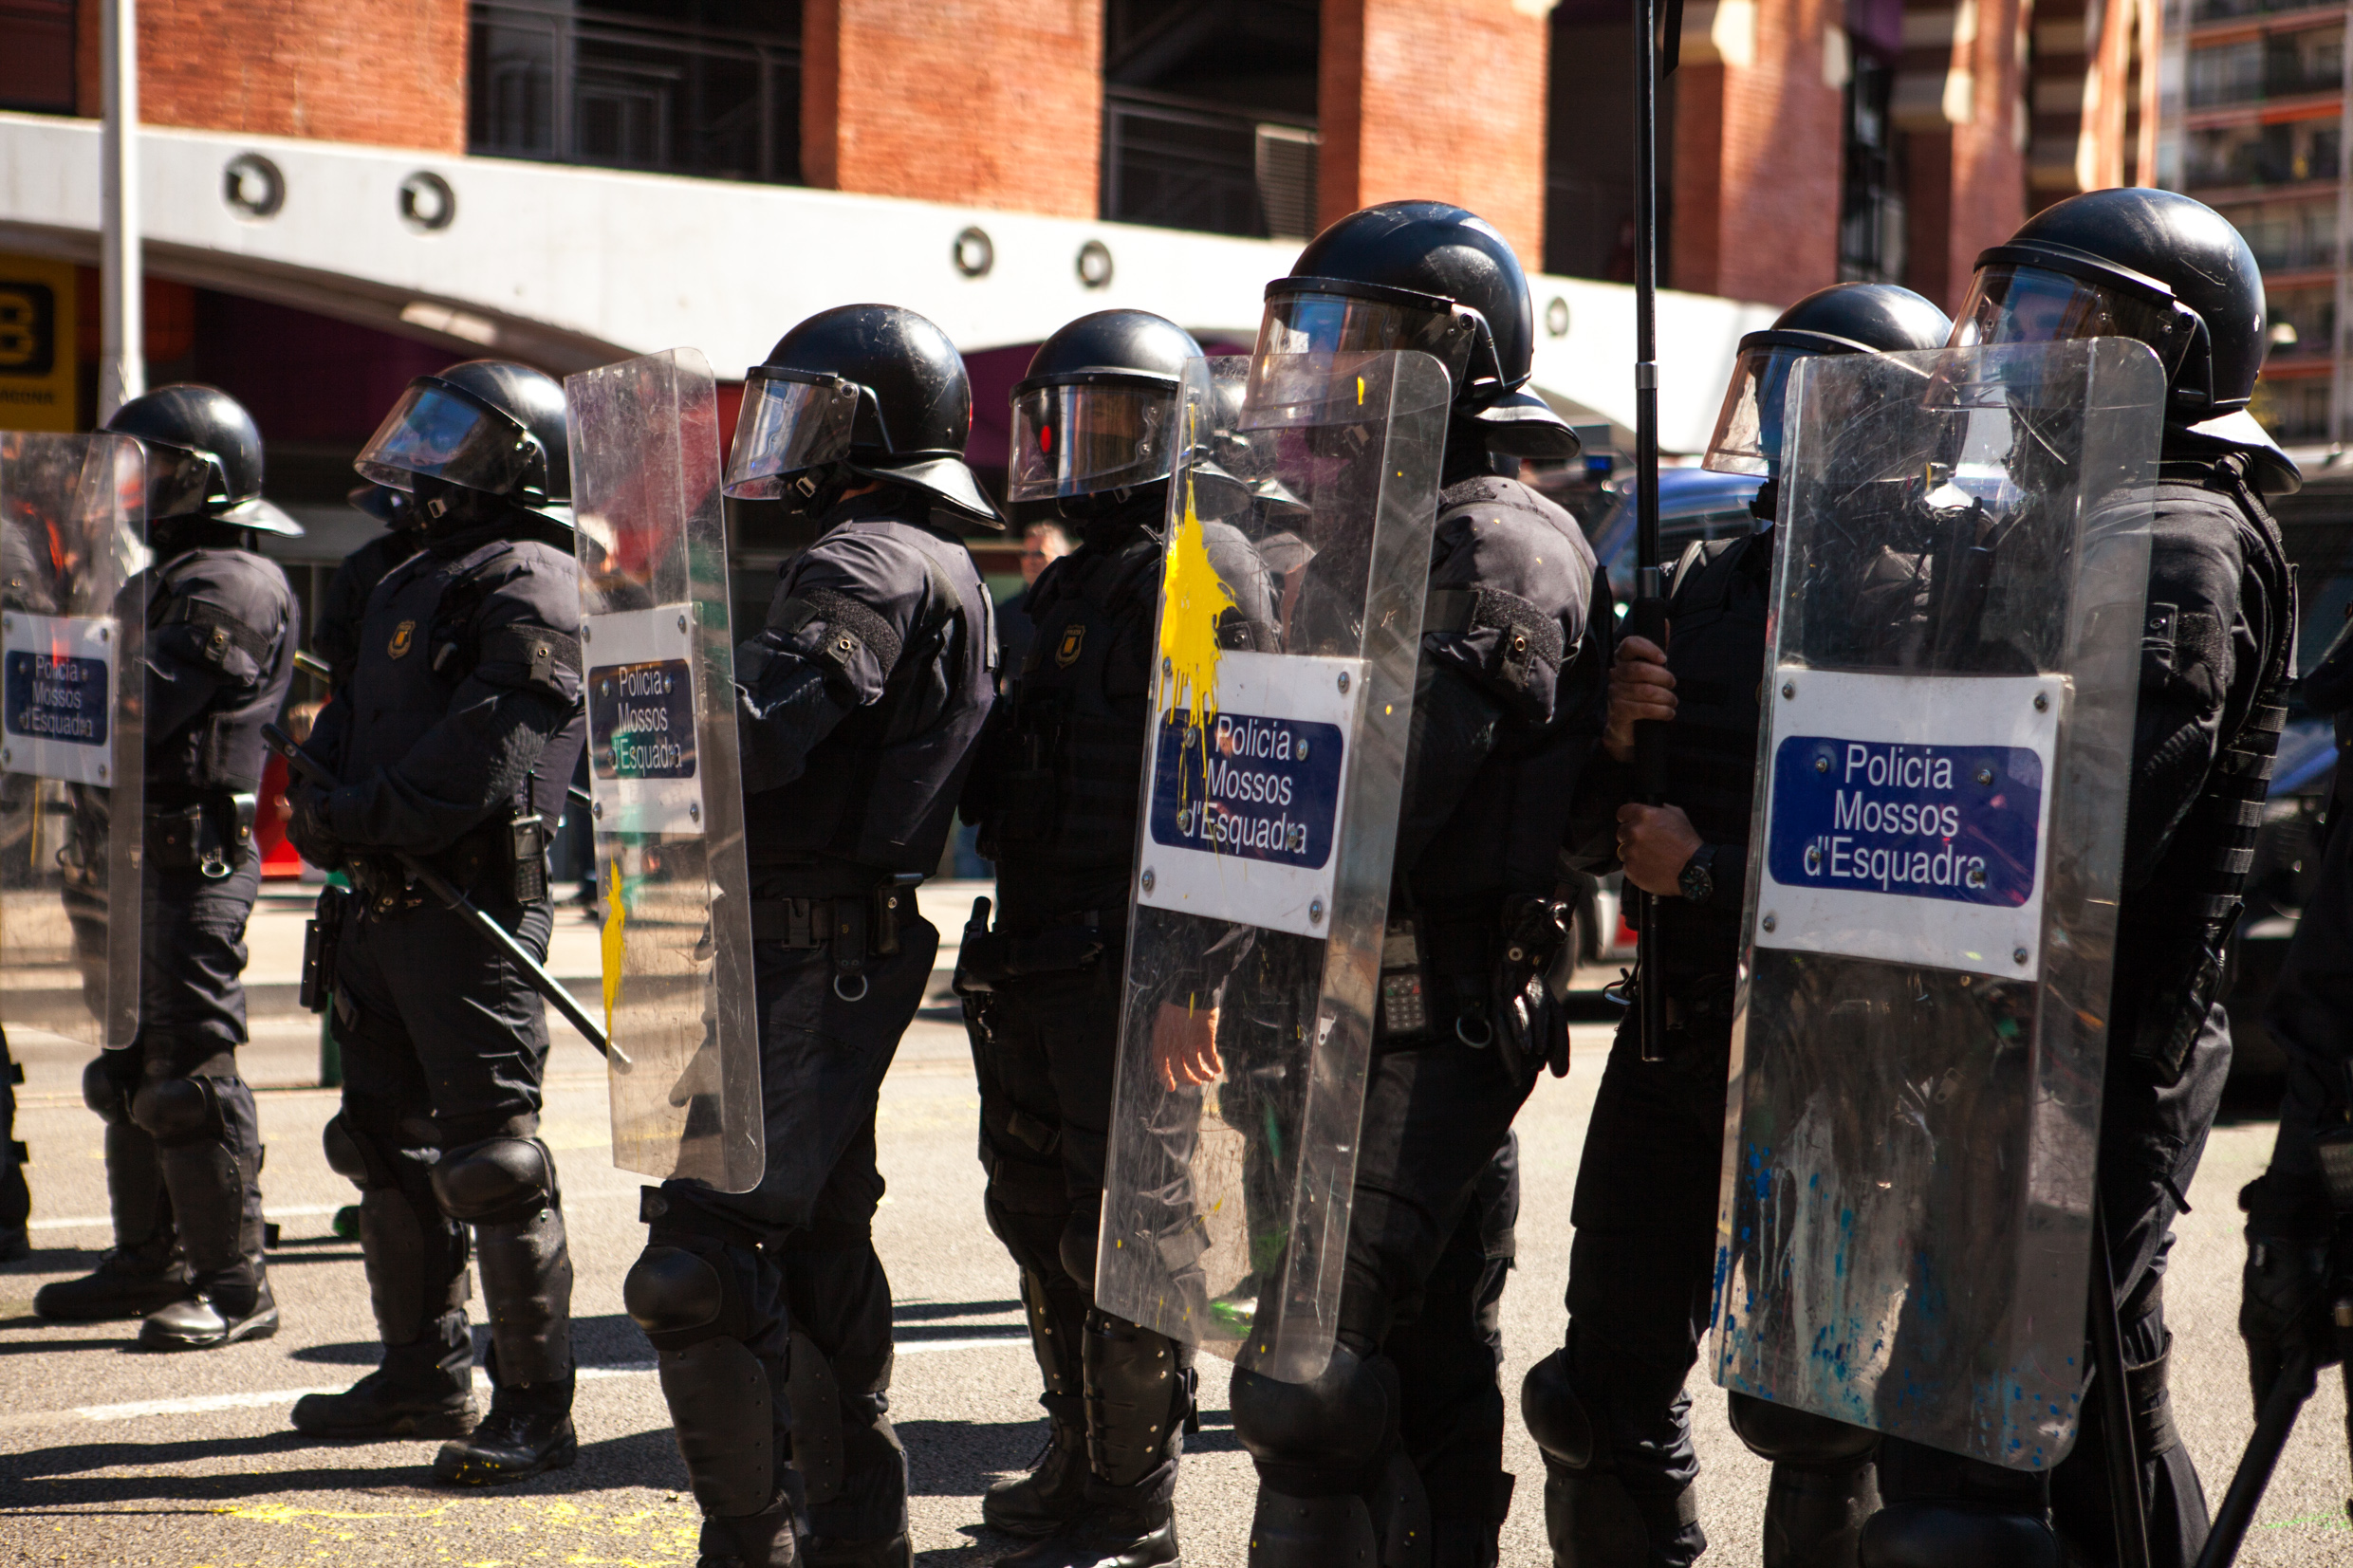 Catalan police protecting spanish far right party VOX from the antifascist group